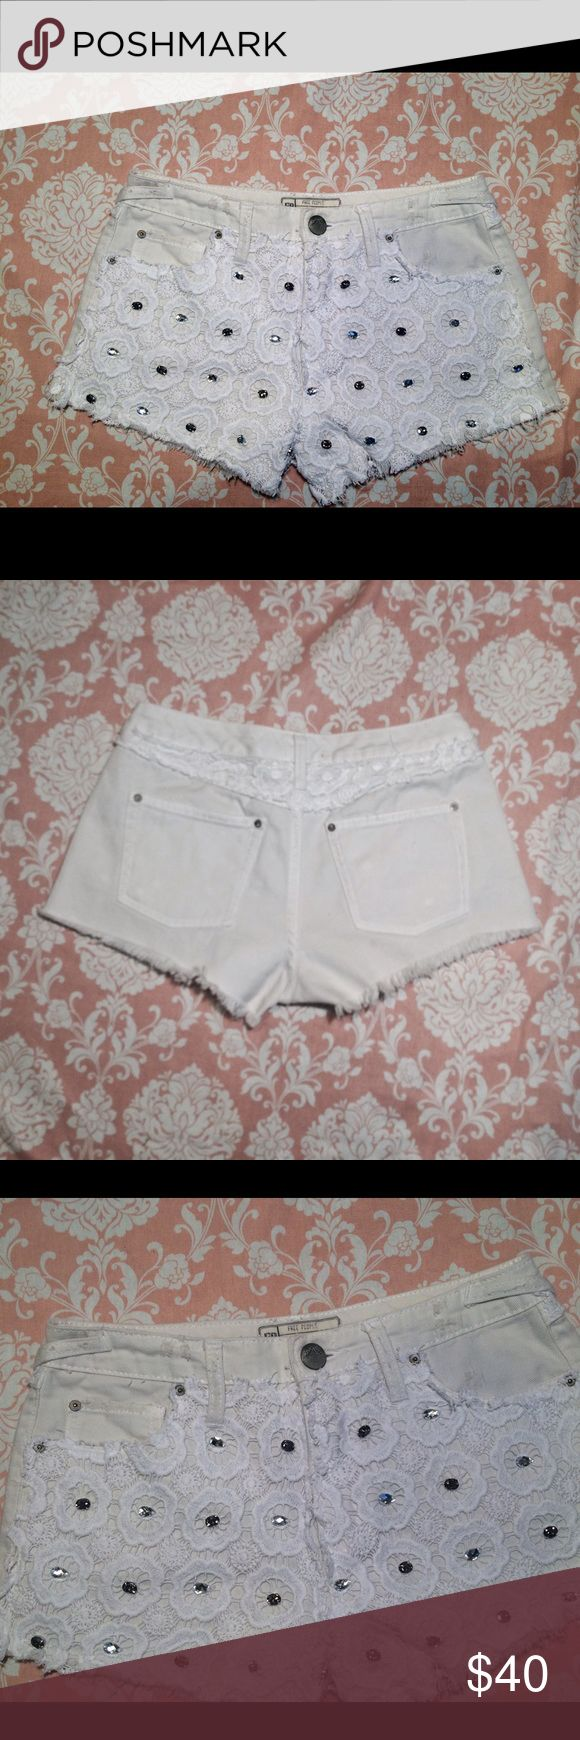 Free People Lace Cut Off Sparkle Shorts sz 25 Free People Lace Cut Off Sparkle Shorts sz 25 good used cond Free People Shorts